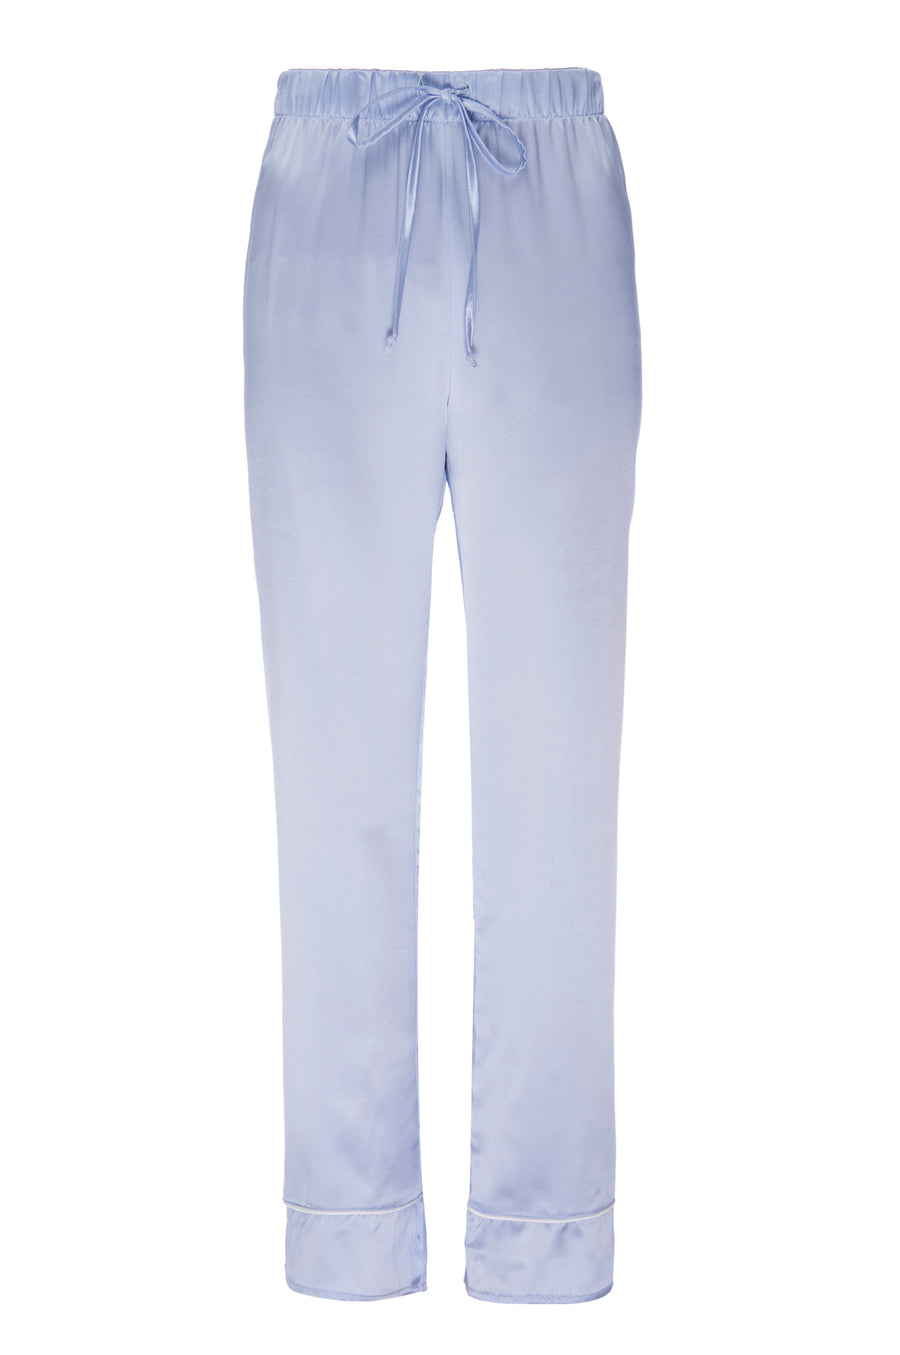 Silk Charmeuse Pant: Ice Blue